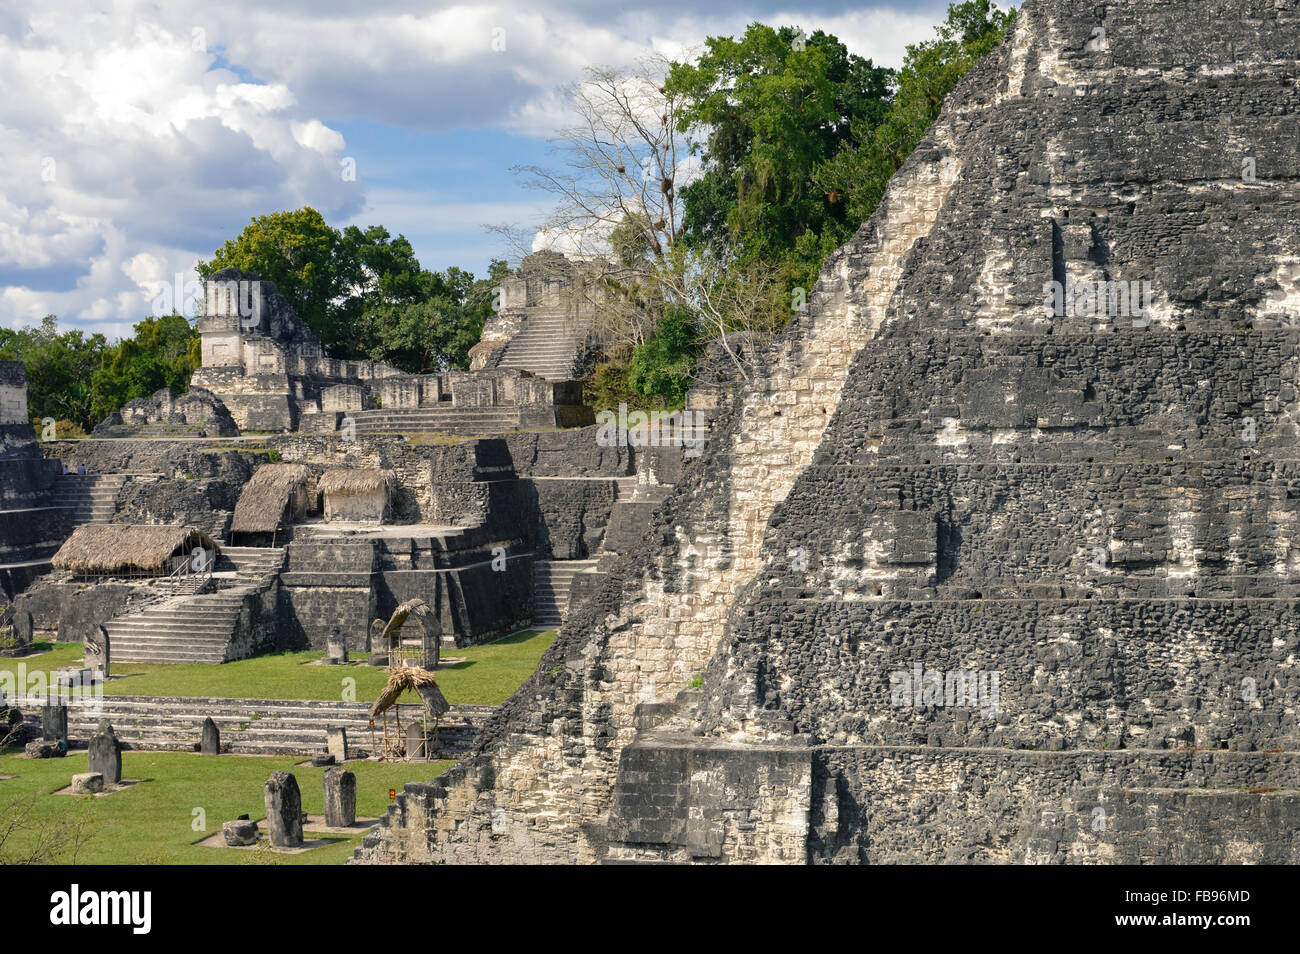 North Acropolis structures in Tikal National Park and archaeological site, Guatemala - Stock Image